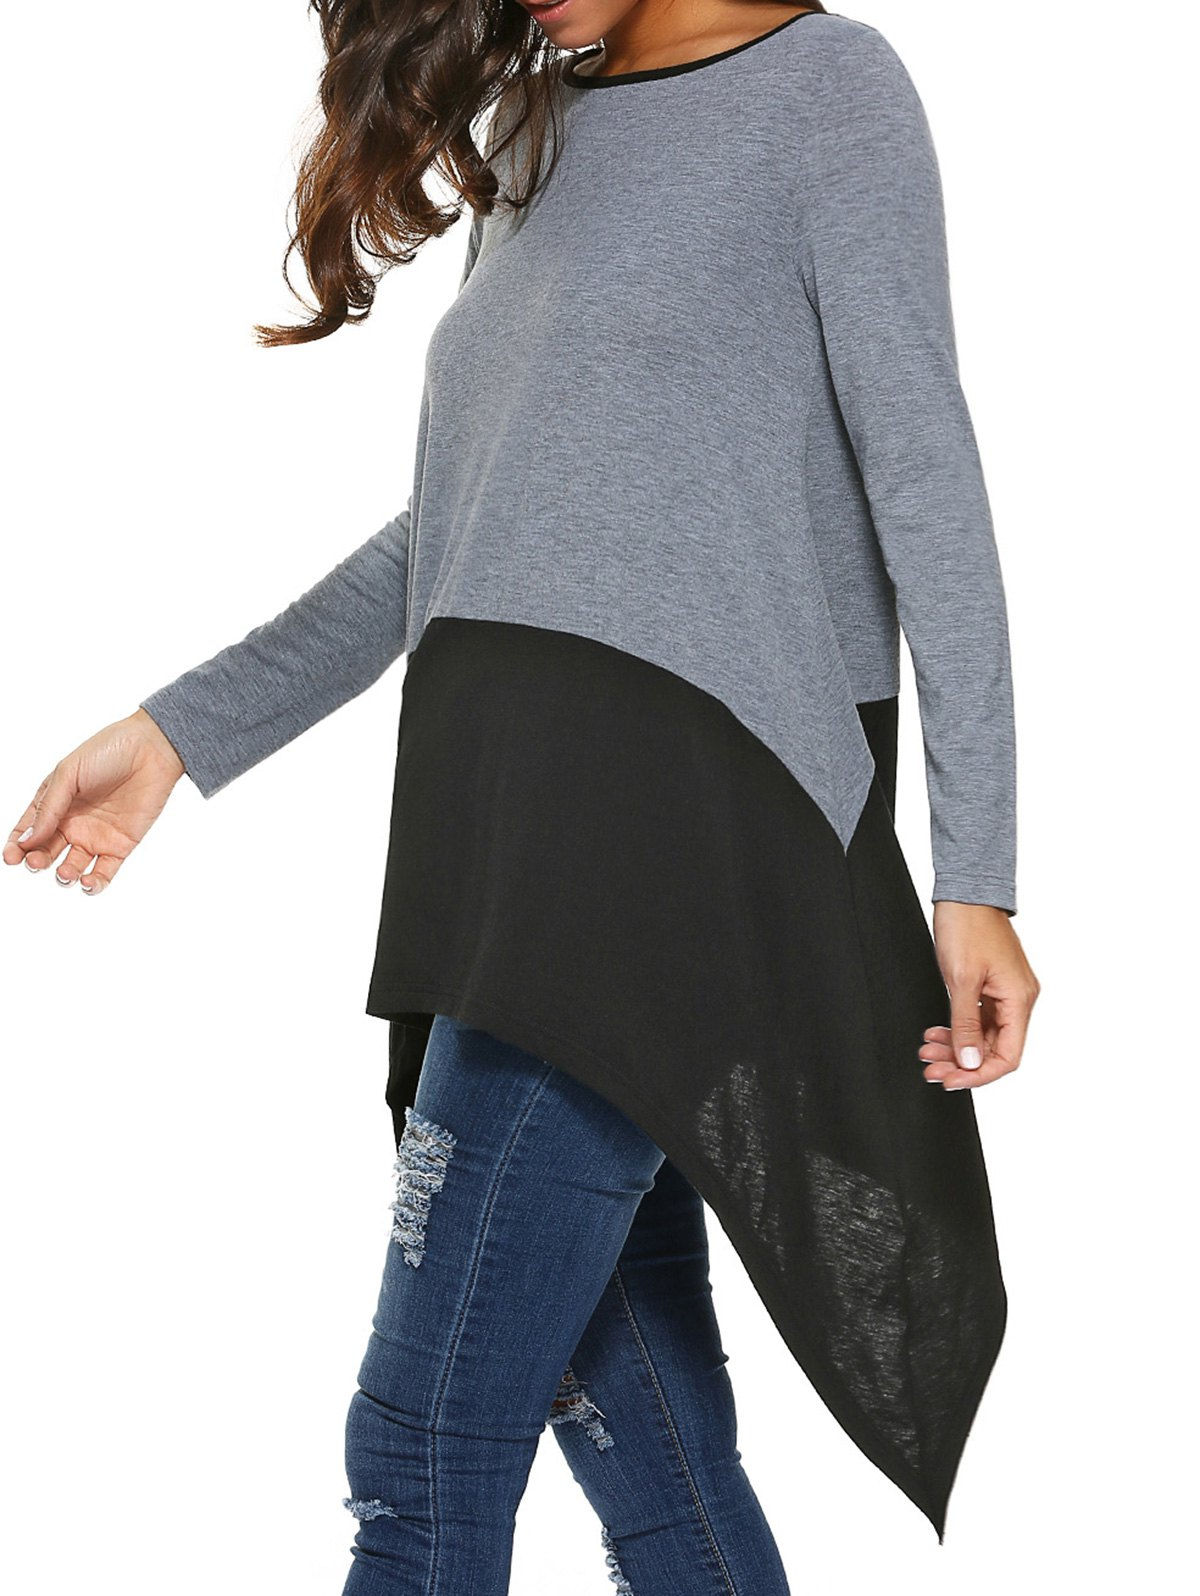 Long Sleeve Asymmetrical Blouse - BLACK/GREY M